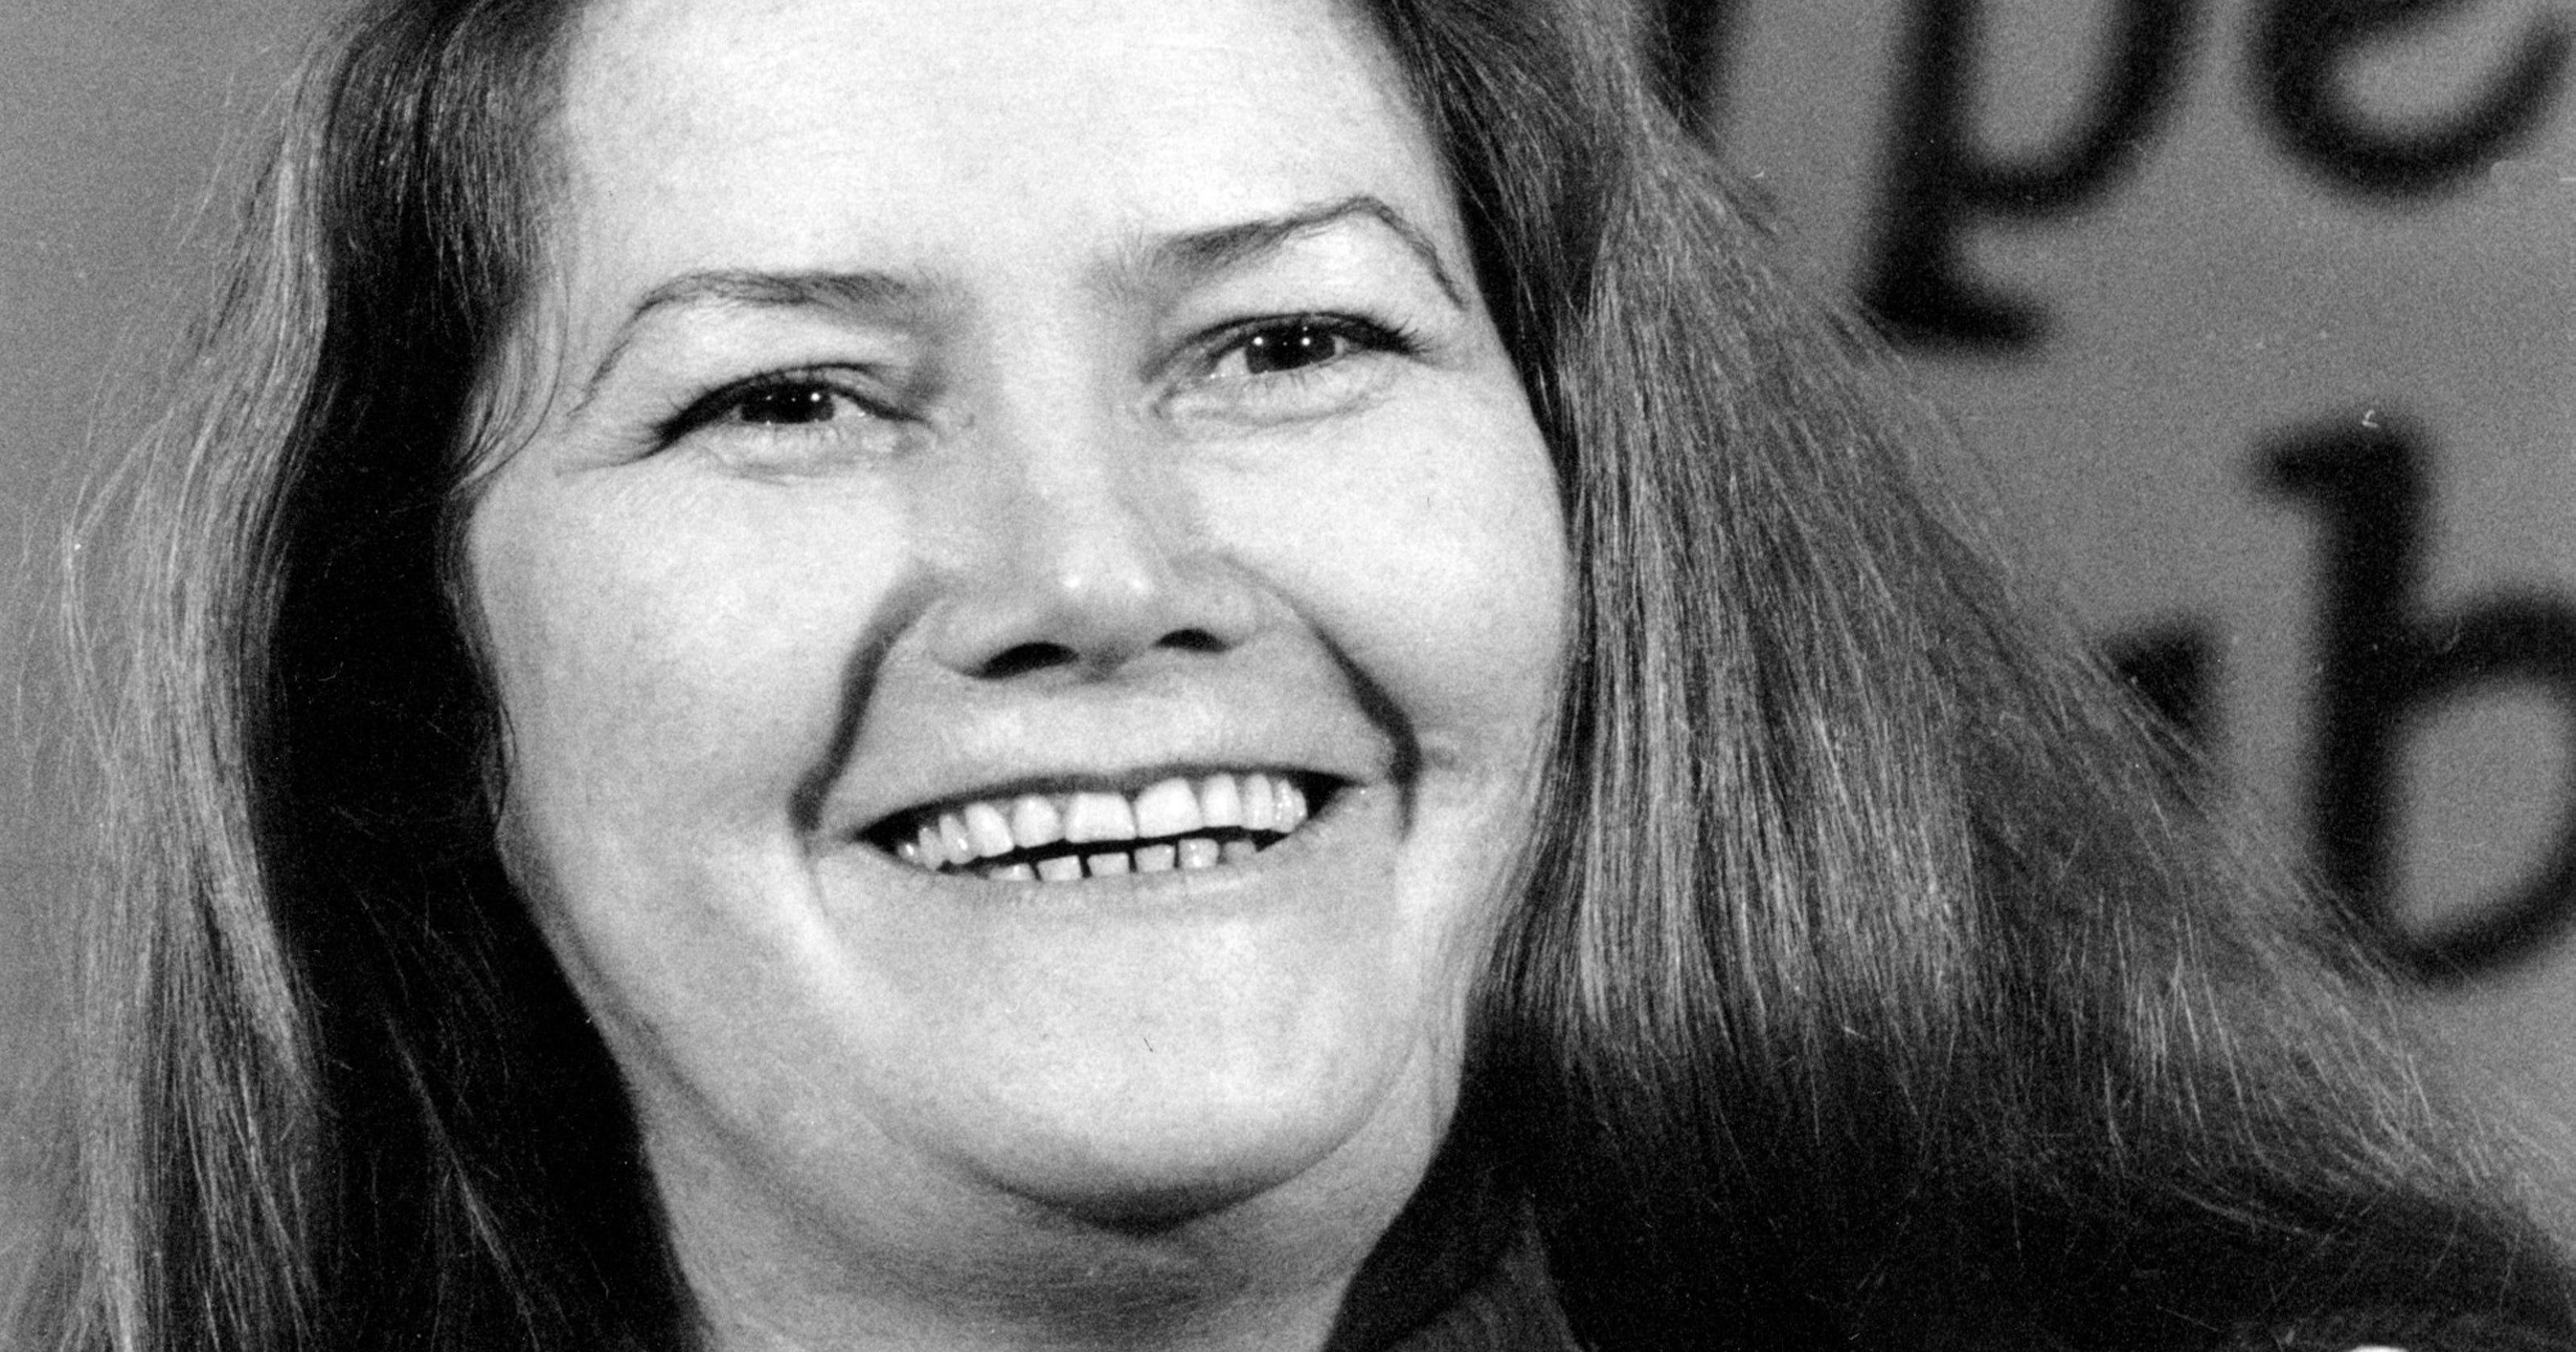 The Thorn Birds Author Colleen Mccullough Dies At 77 Radio Wave Diagram Http Hollywoodbollywood Co In Hoadmin